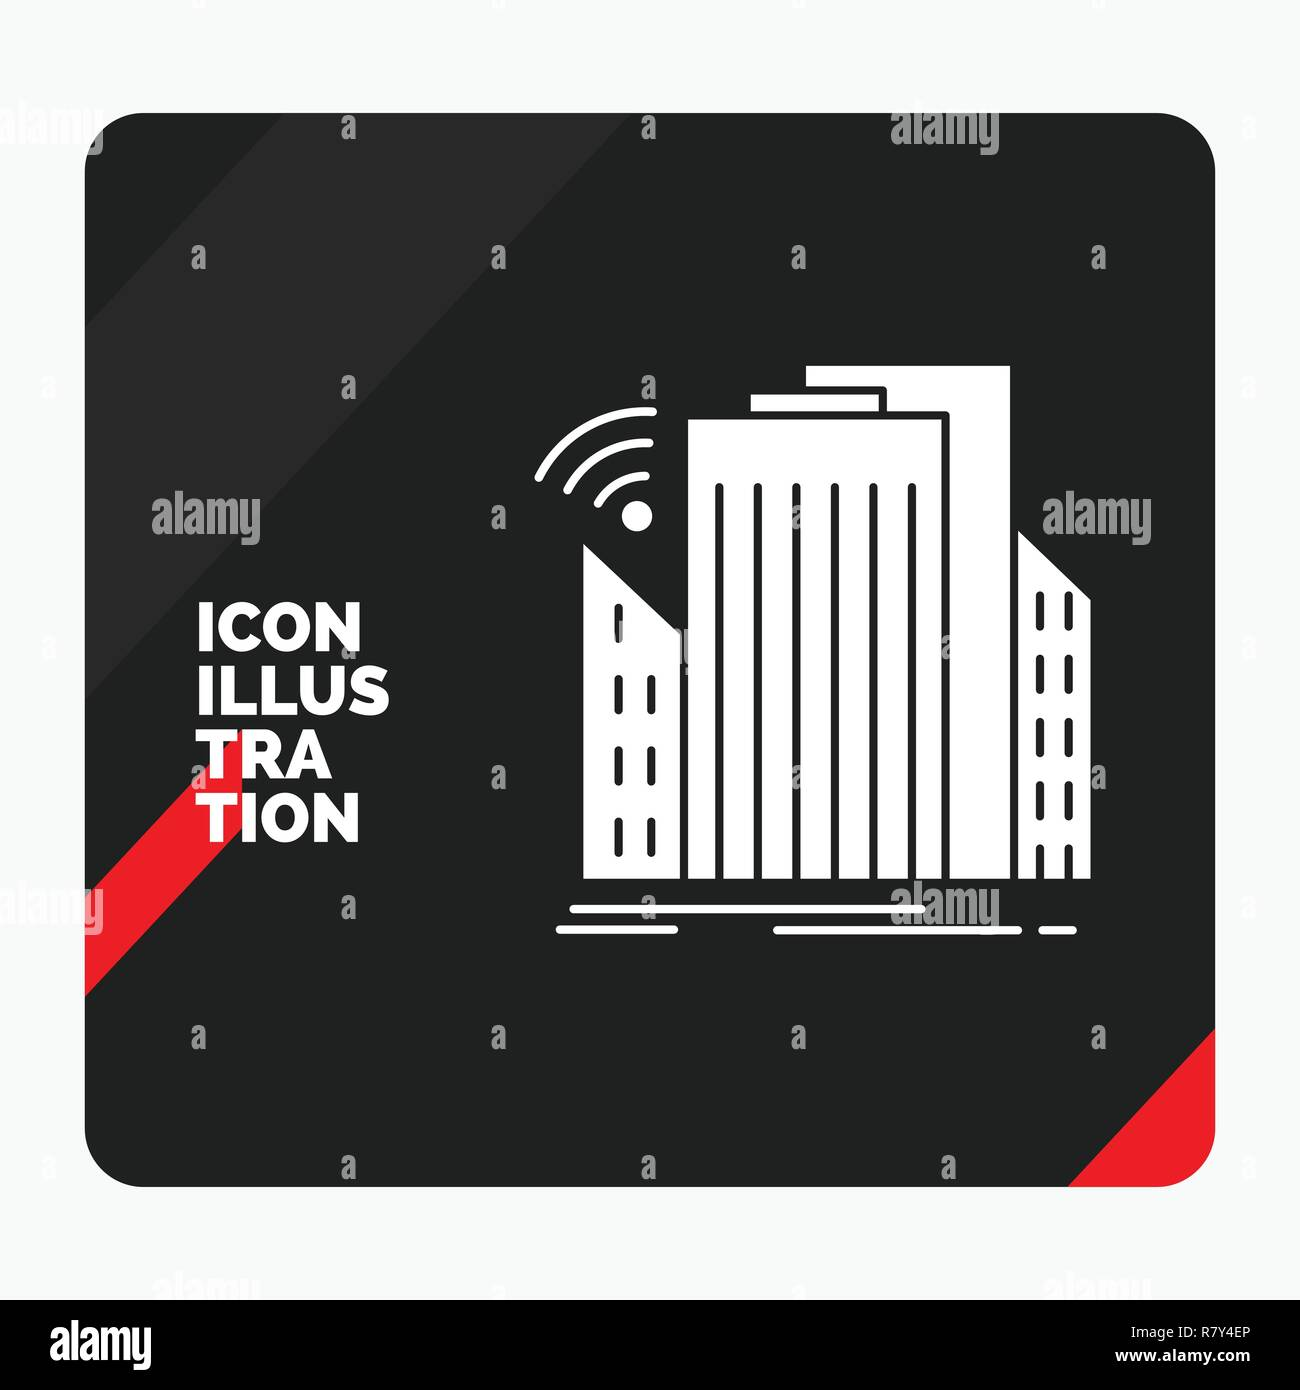 Red and Black Creative presentation Background for Buildings, city, sensor, smart, urban Glyph Icon - Stock Vector